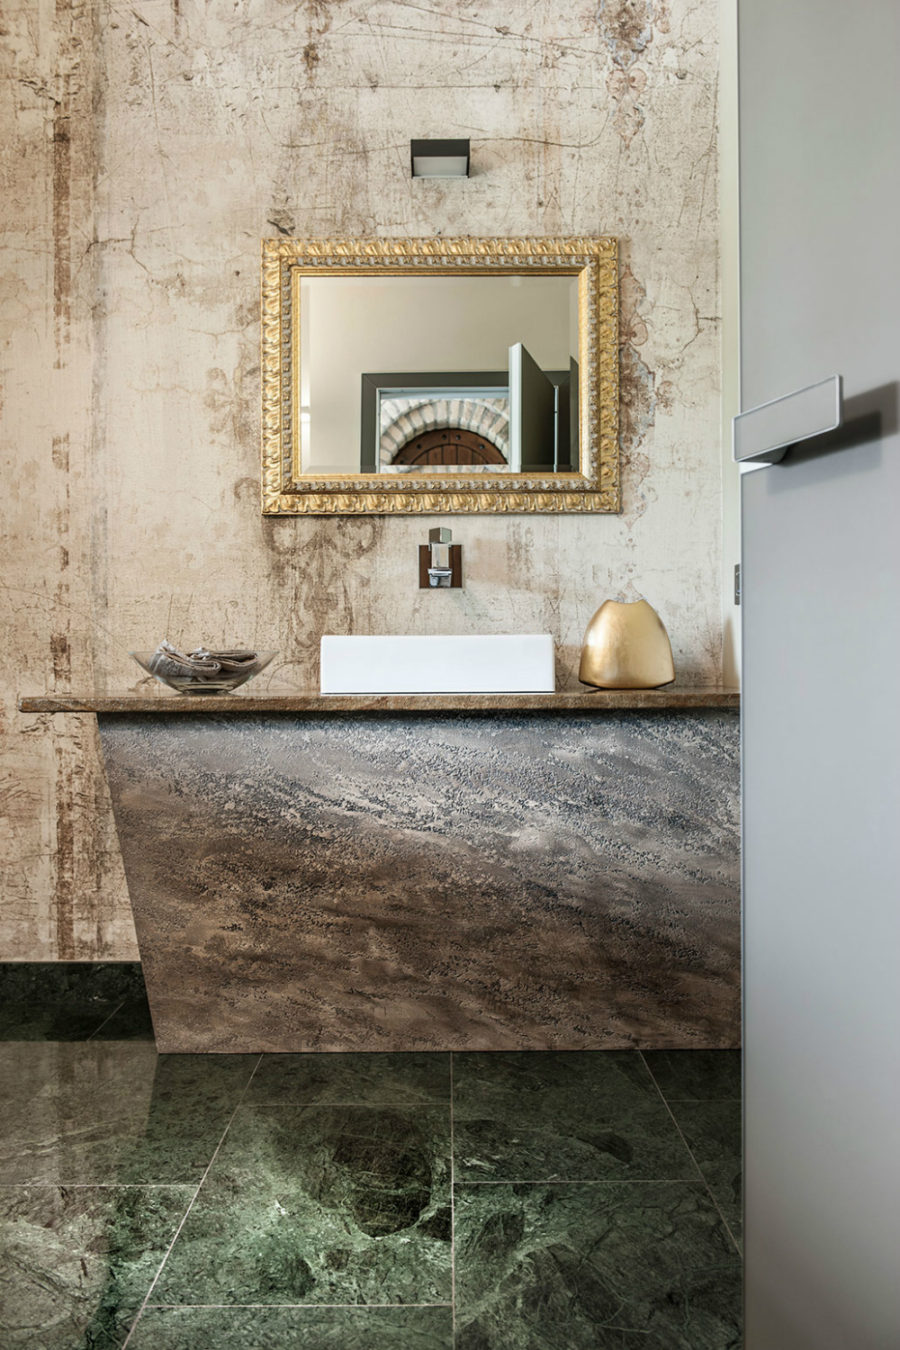 Golden accents work well with the textured stone surfaces